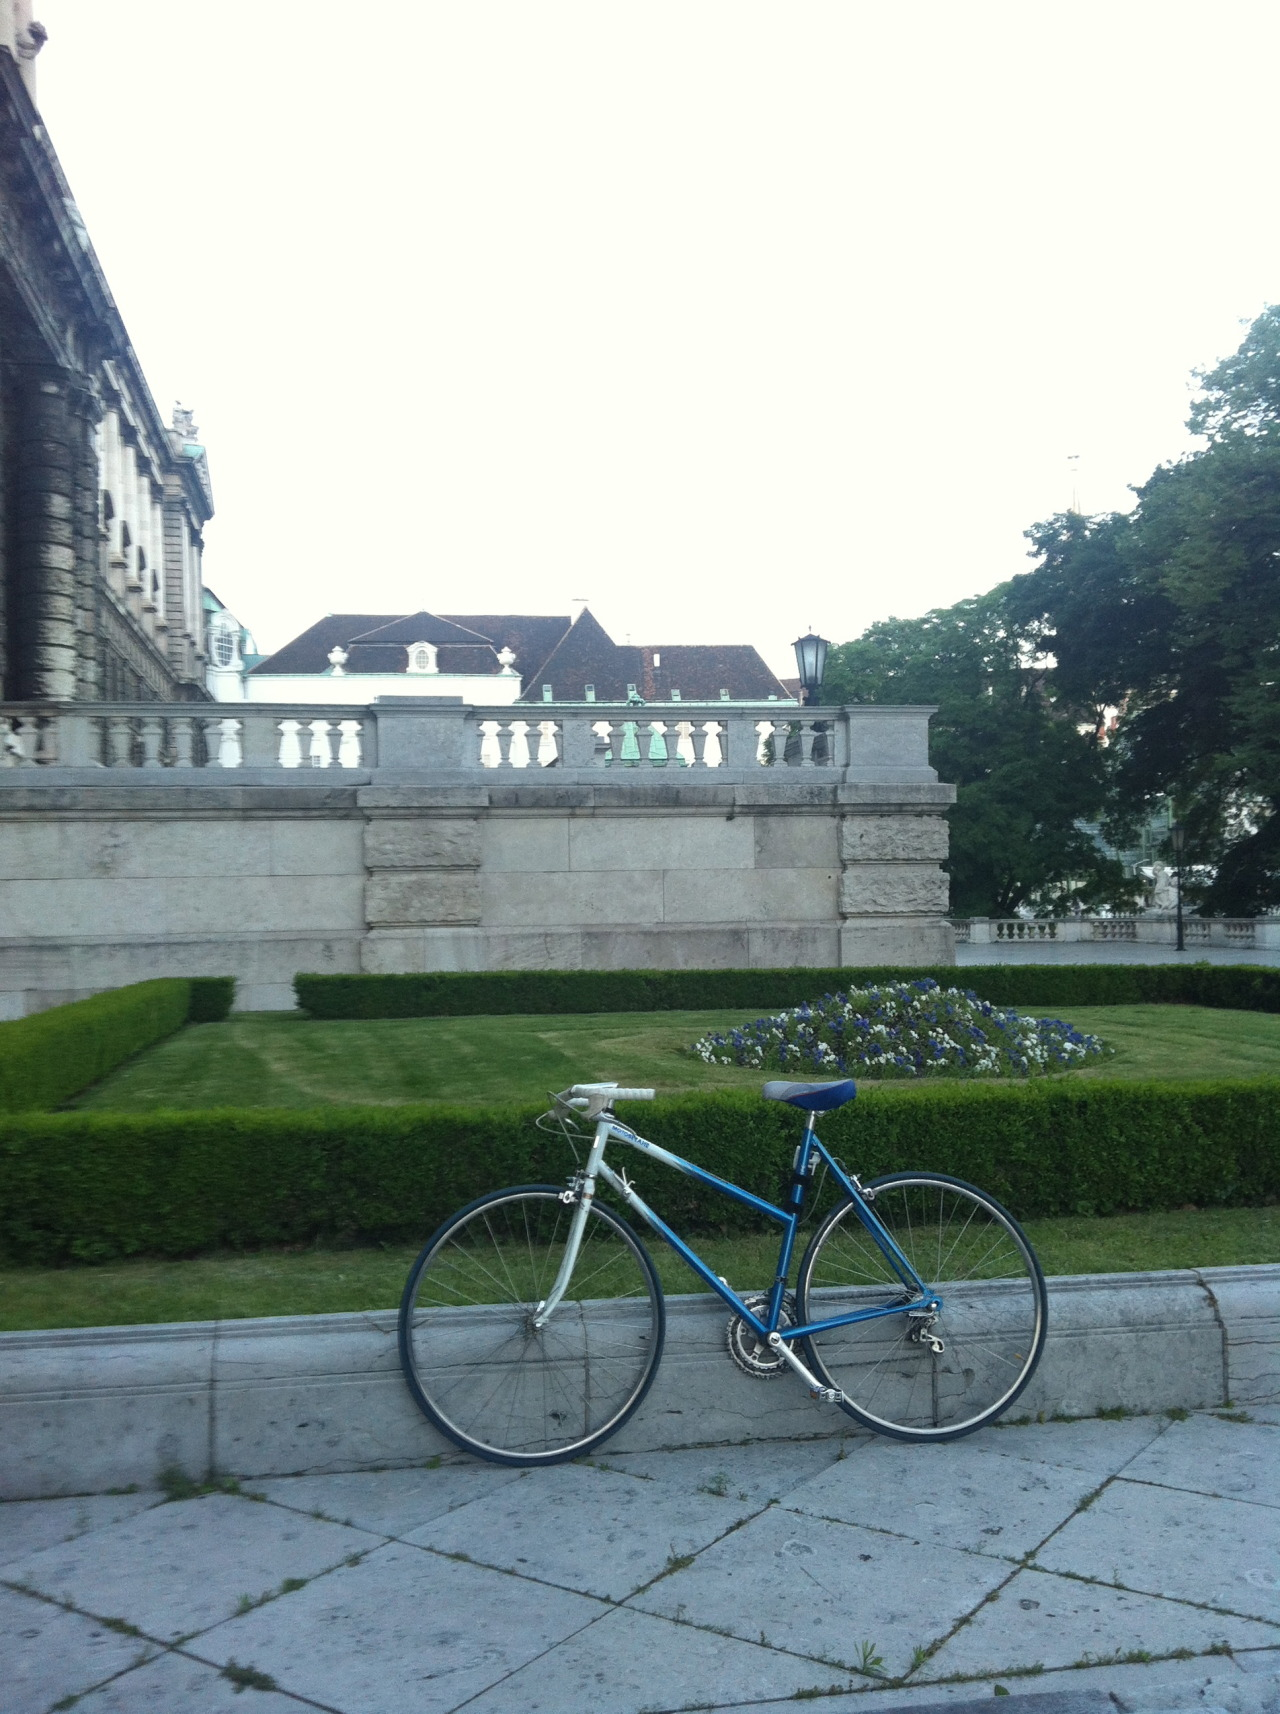 my bike @ wien, 2013 lol